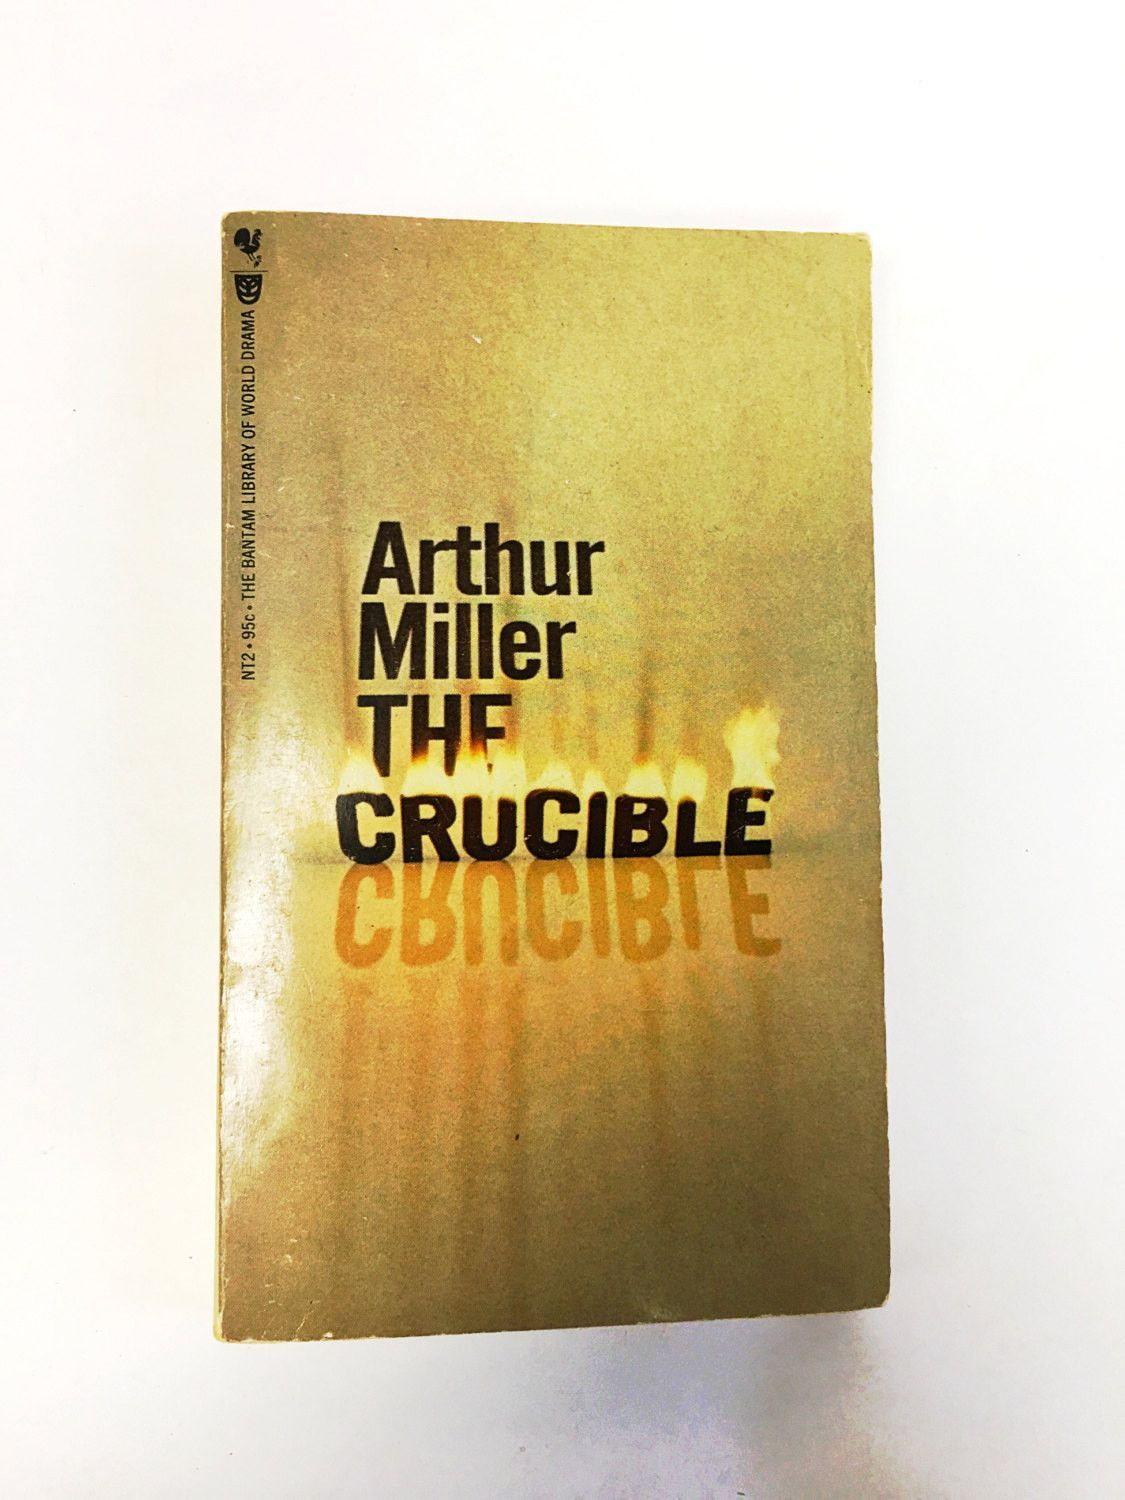 The Crucible by Arthur Miller. Paperback Book. A play in four parts. 1967. Classic Literature